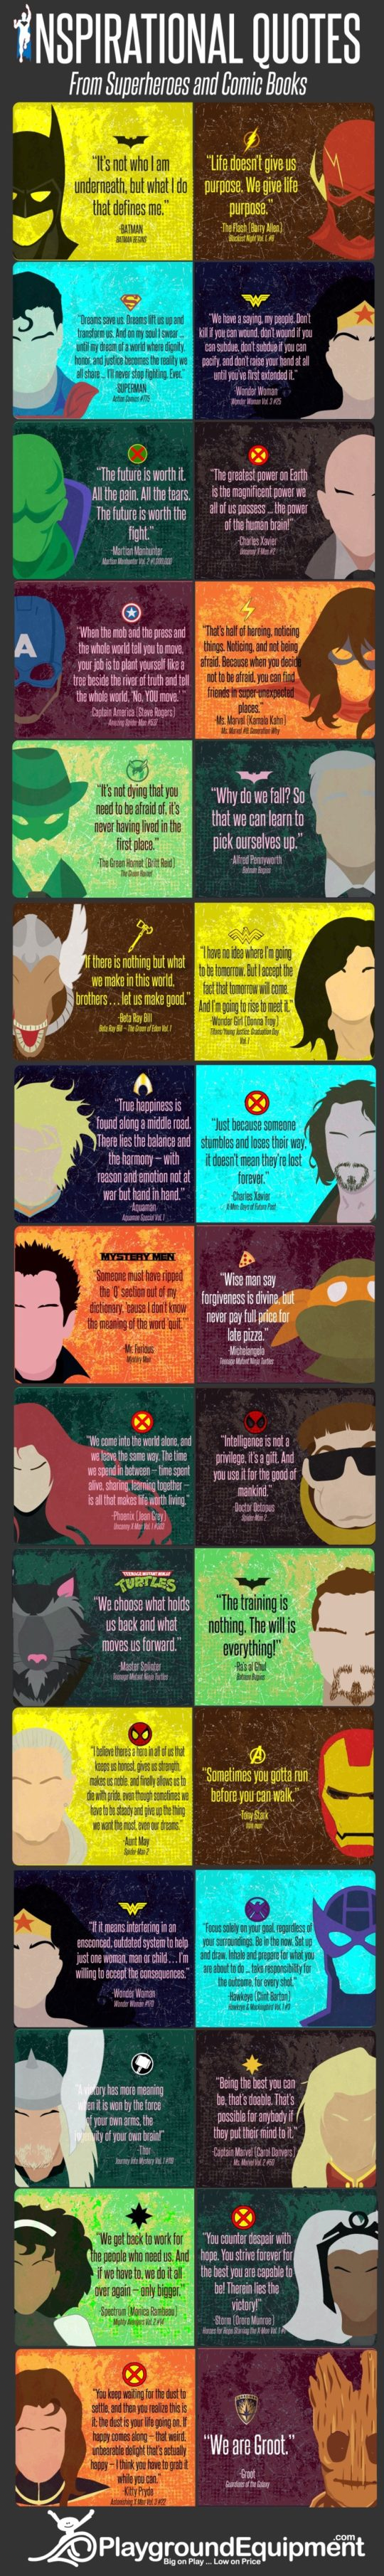 Inspirational-quotes-from-your-favorite-comic-books-full-infographic-540x3621.jpg